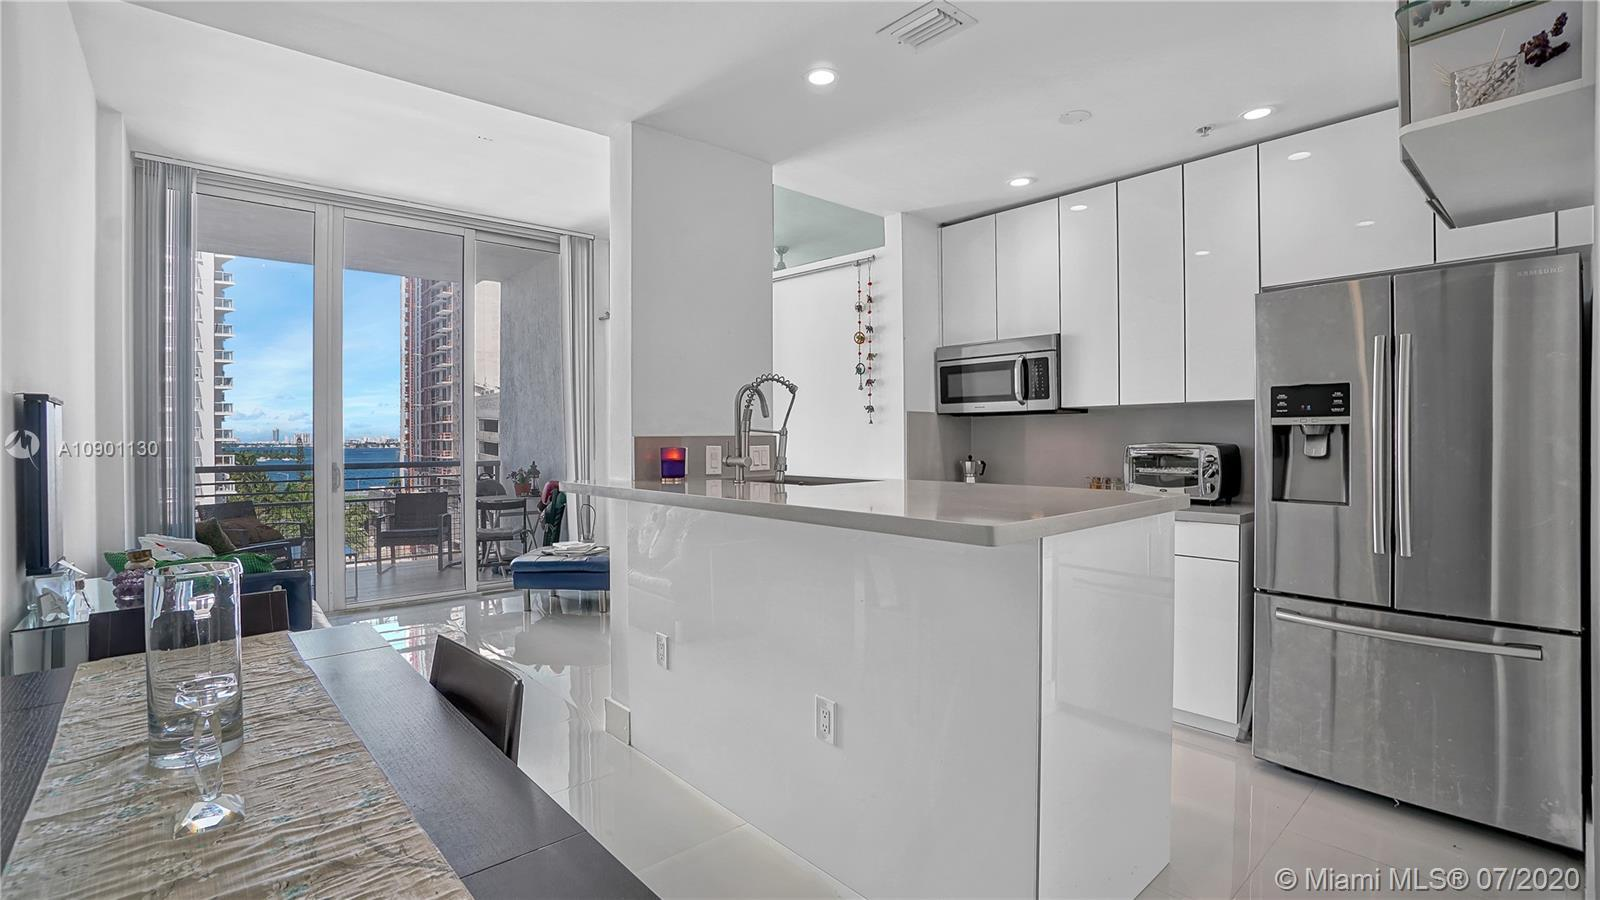 A Great Value with water views! Come see one of the lowest priced condos in Downtown Miami's Edgewat